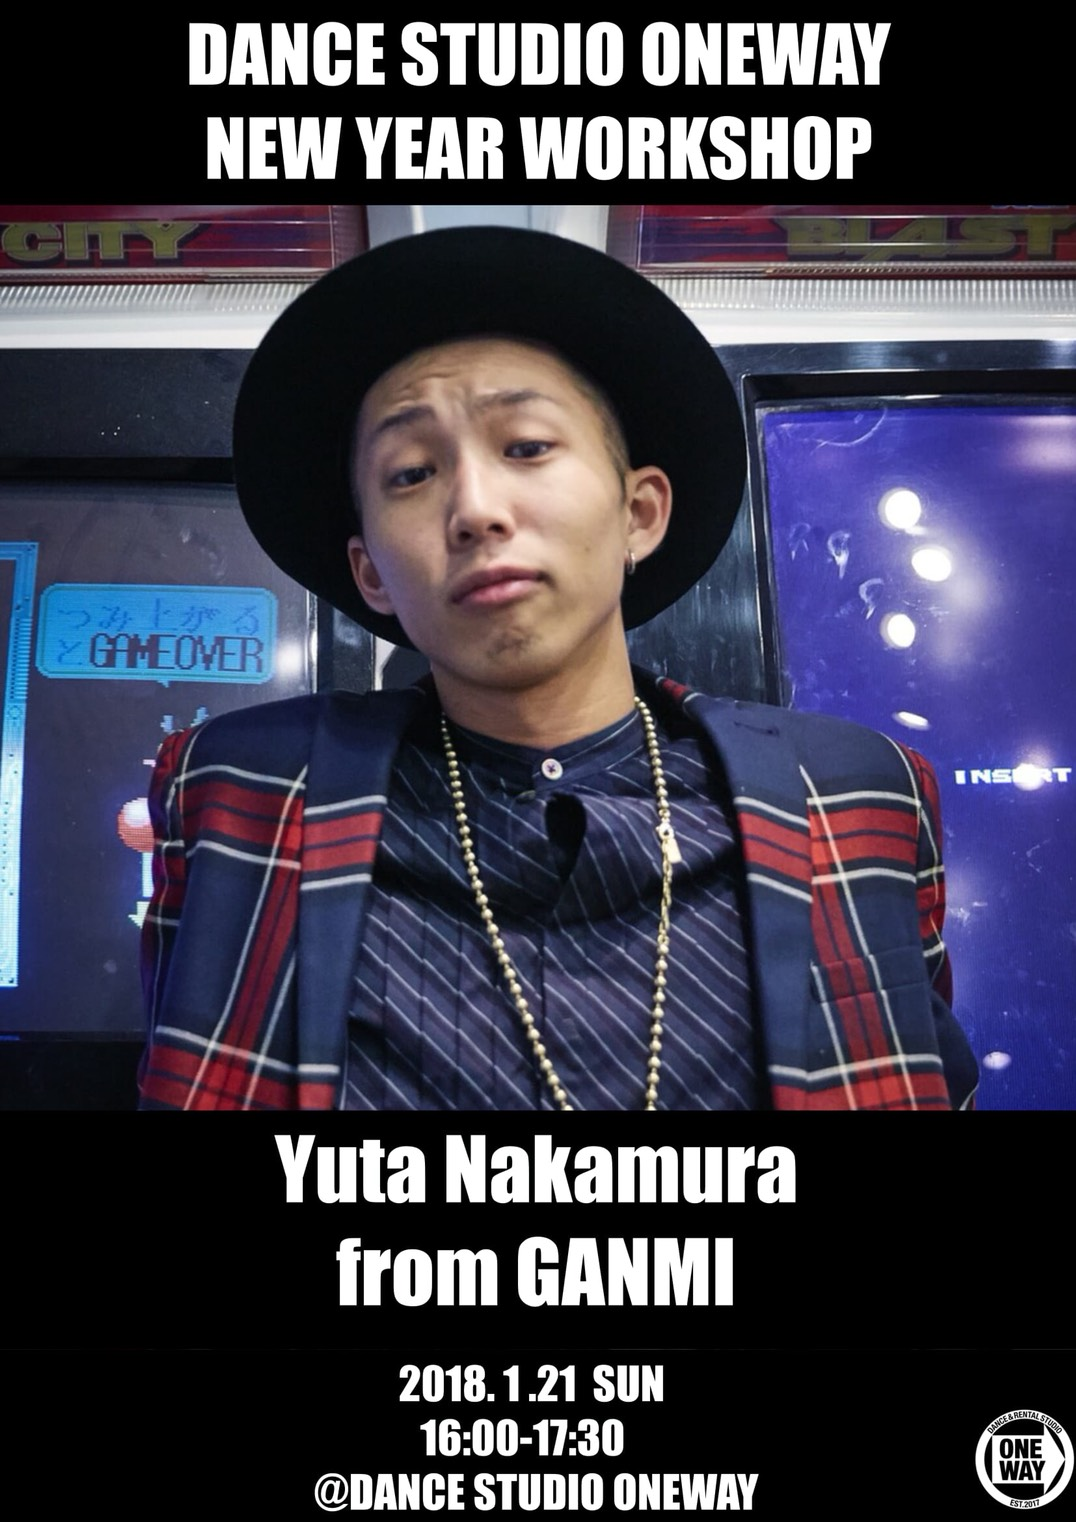 Yuta Nakamura from GANMI New Year Work Shop